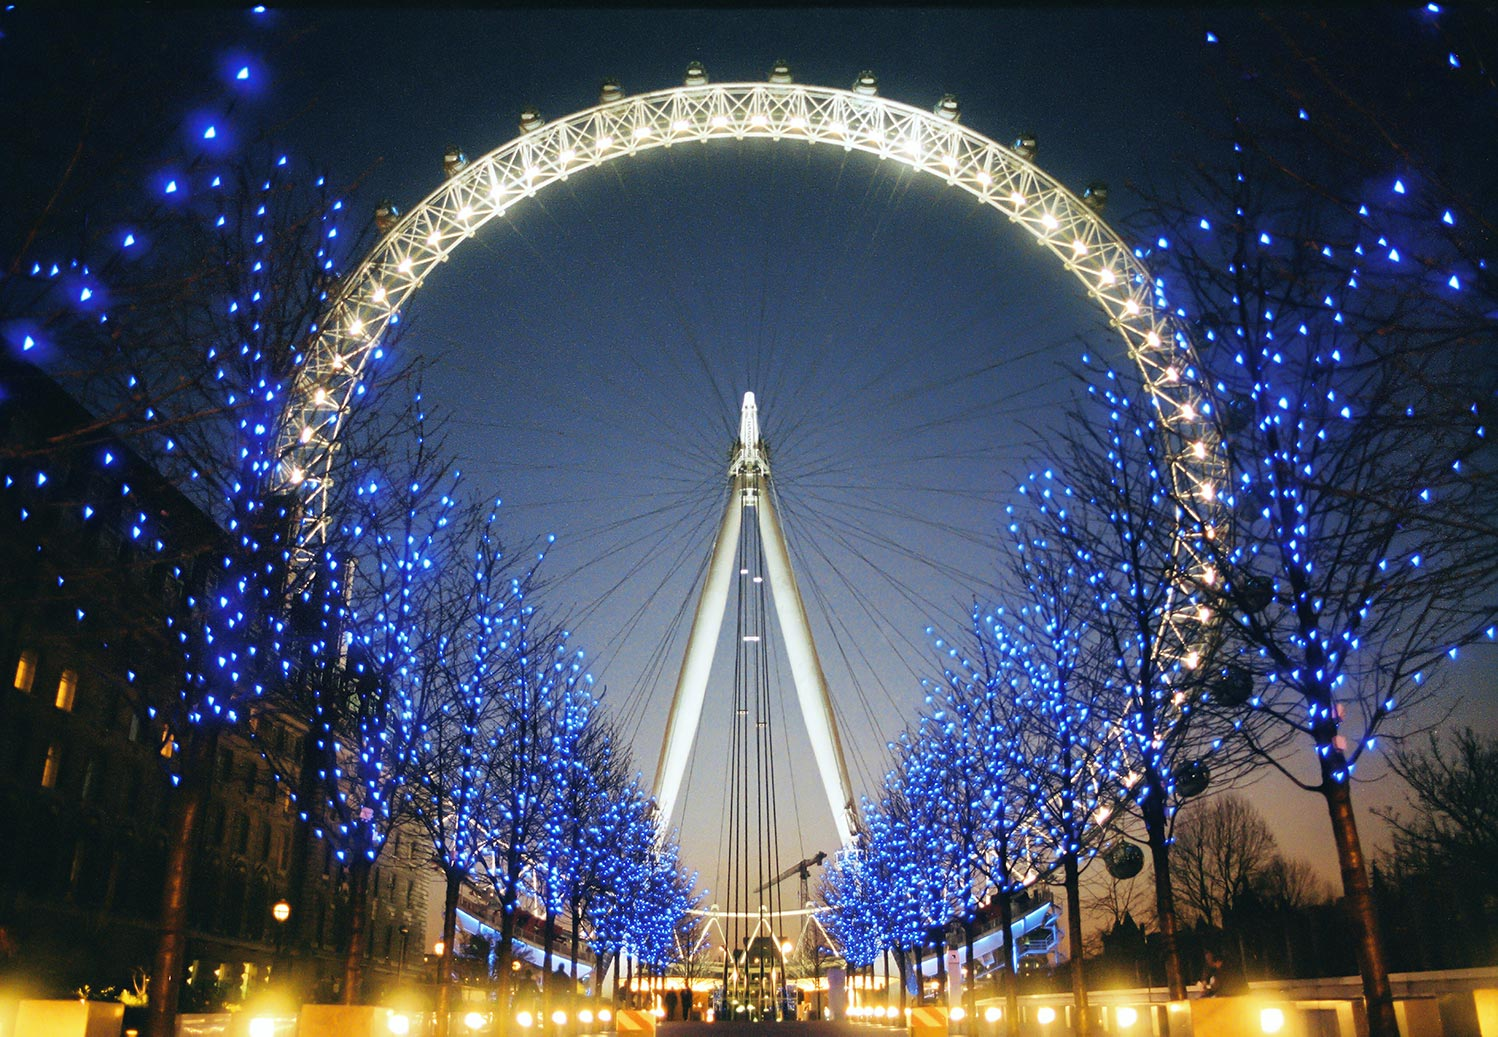 The illuminated London Eye at night, taken the year after it opened from a low viewpoint beyond the Blue lit trees in Jubilee Gardens